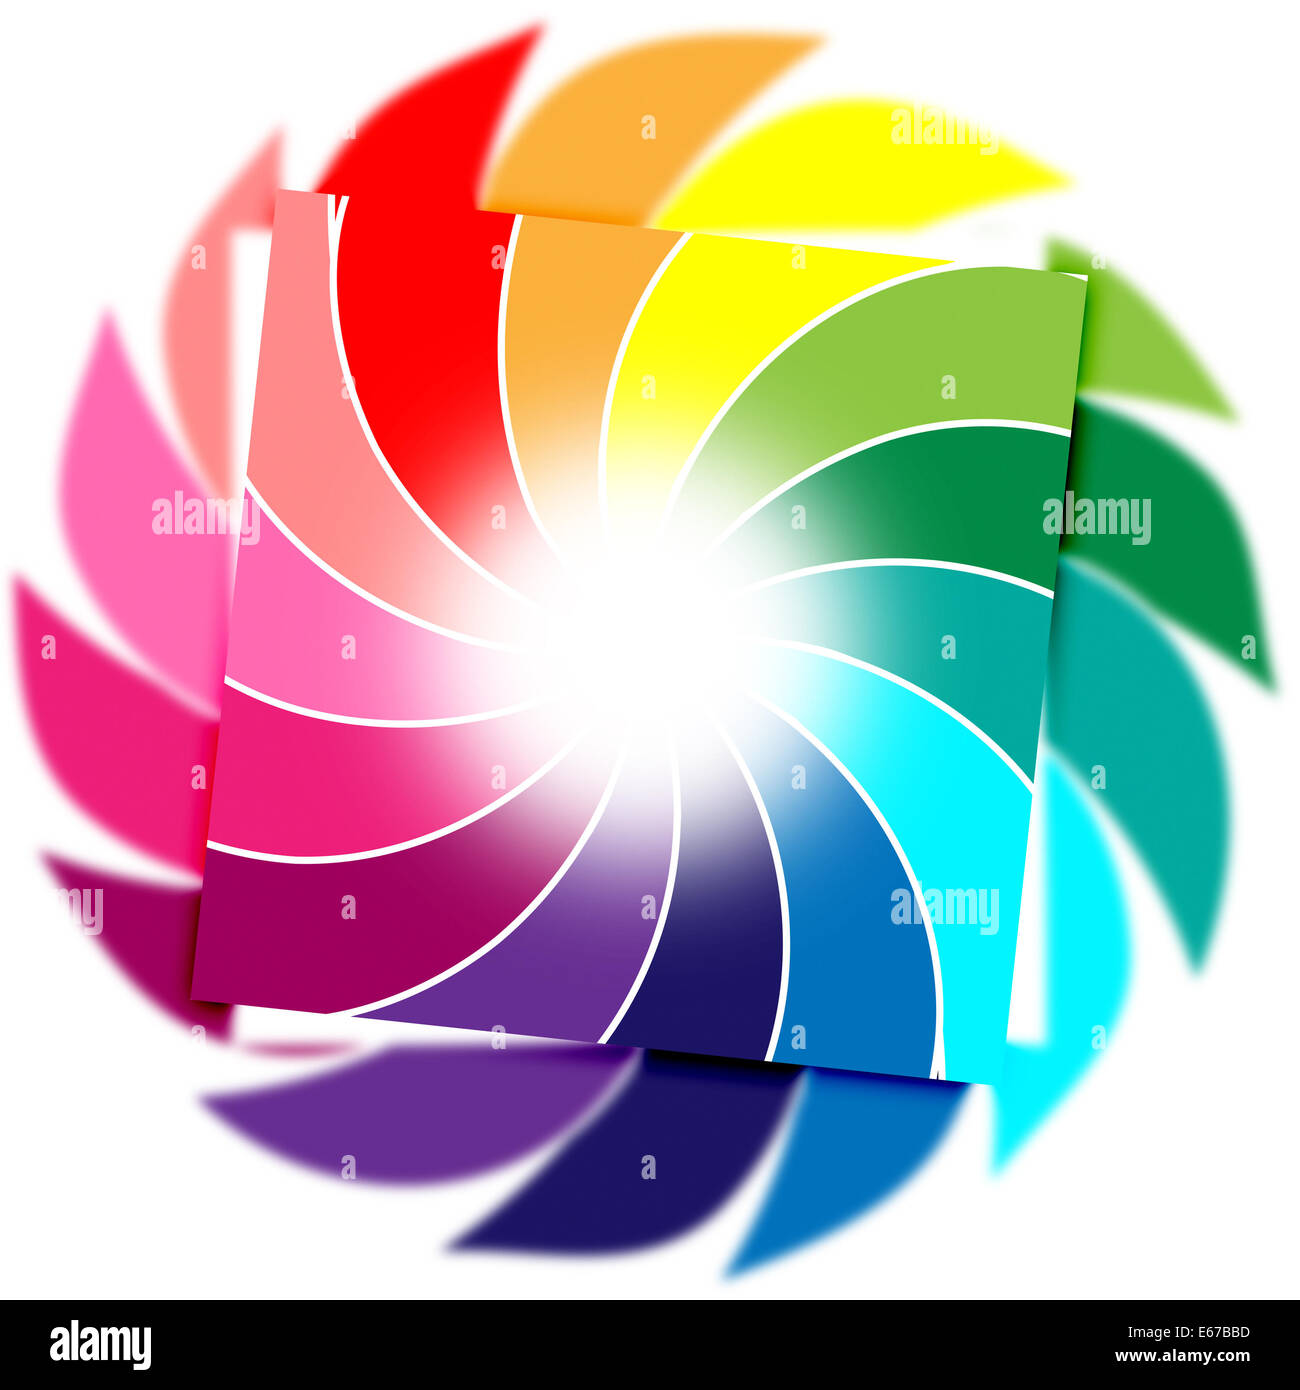 Background Spiral Representing Twist Abstract And Colours Stock Photo